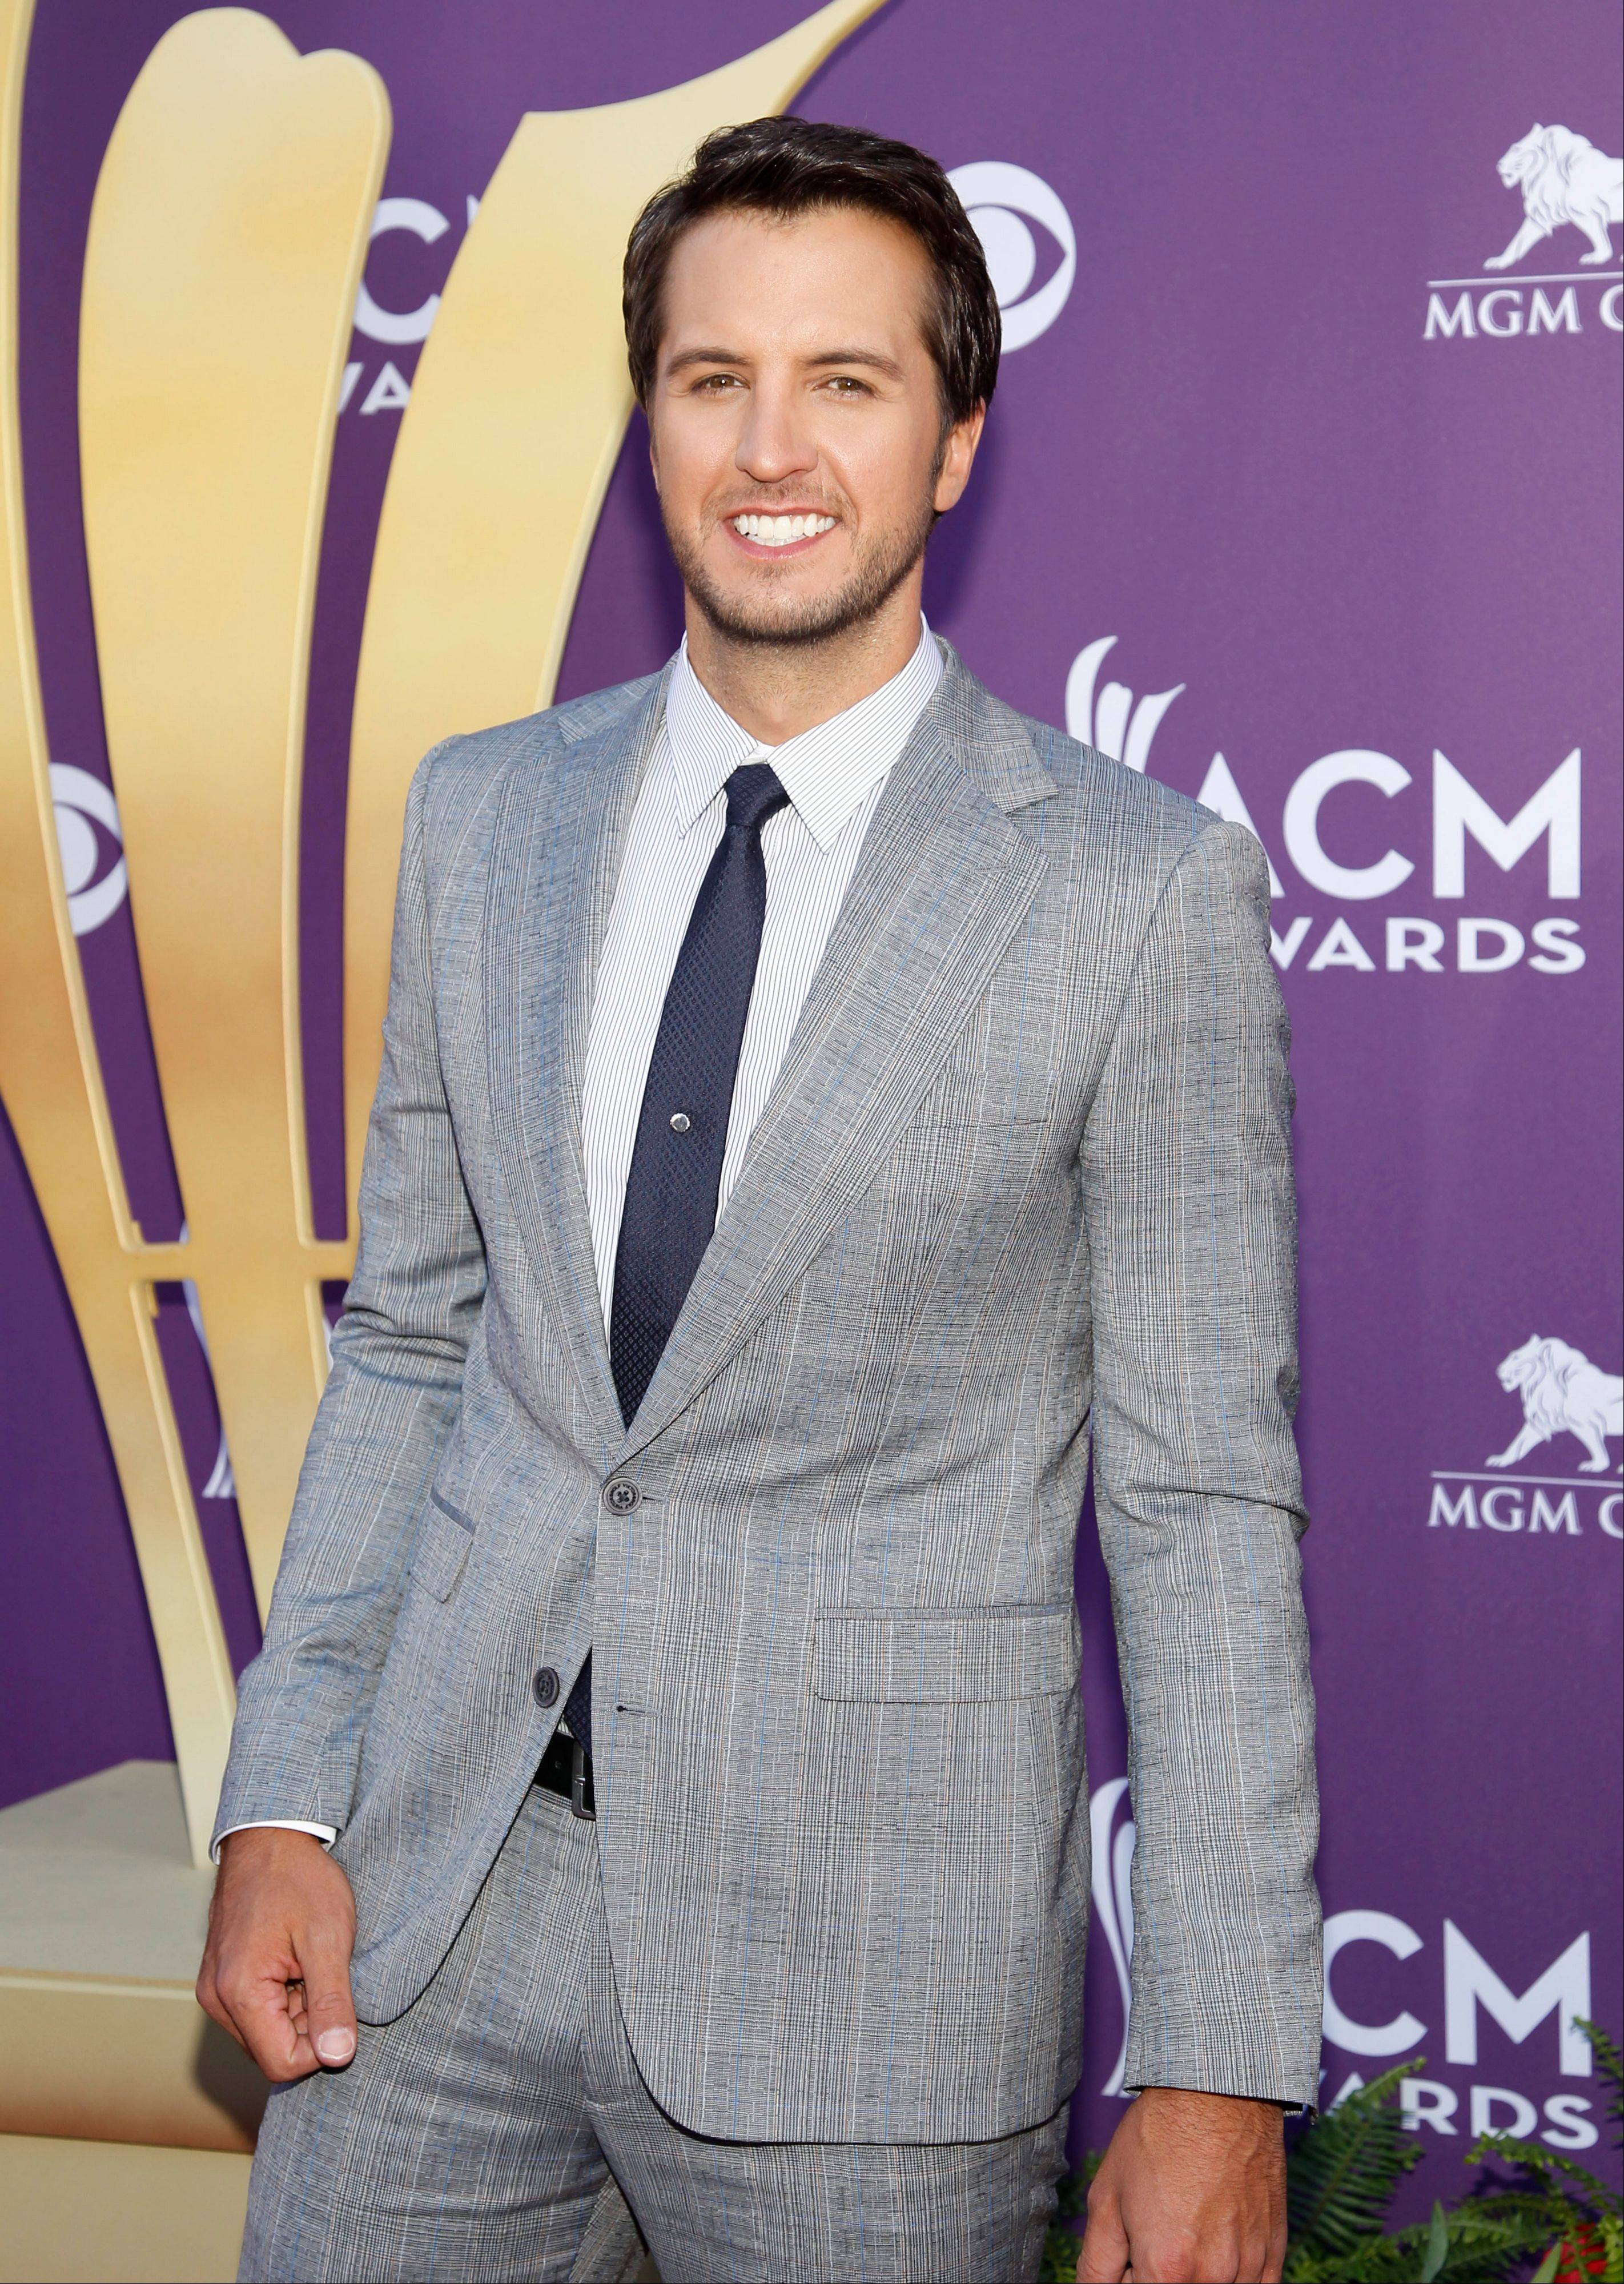 Singer Luke Bryan sports a preppier look with his red carpet get-up.